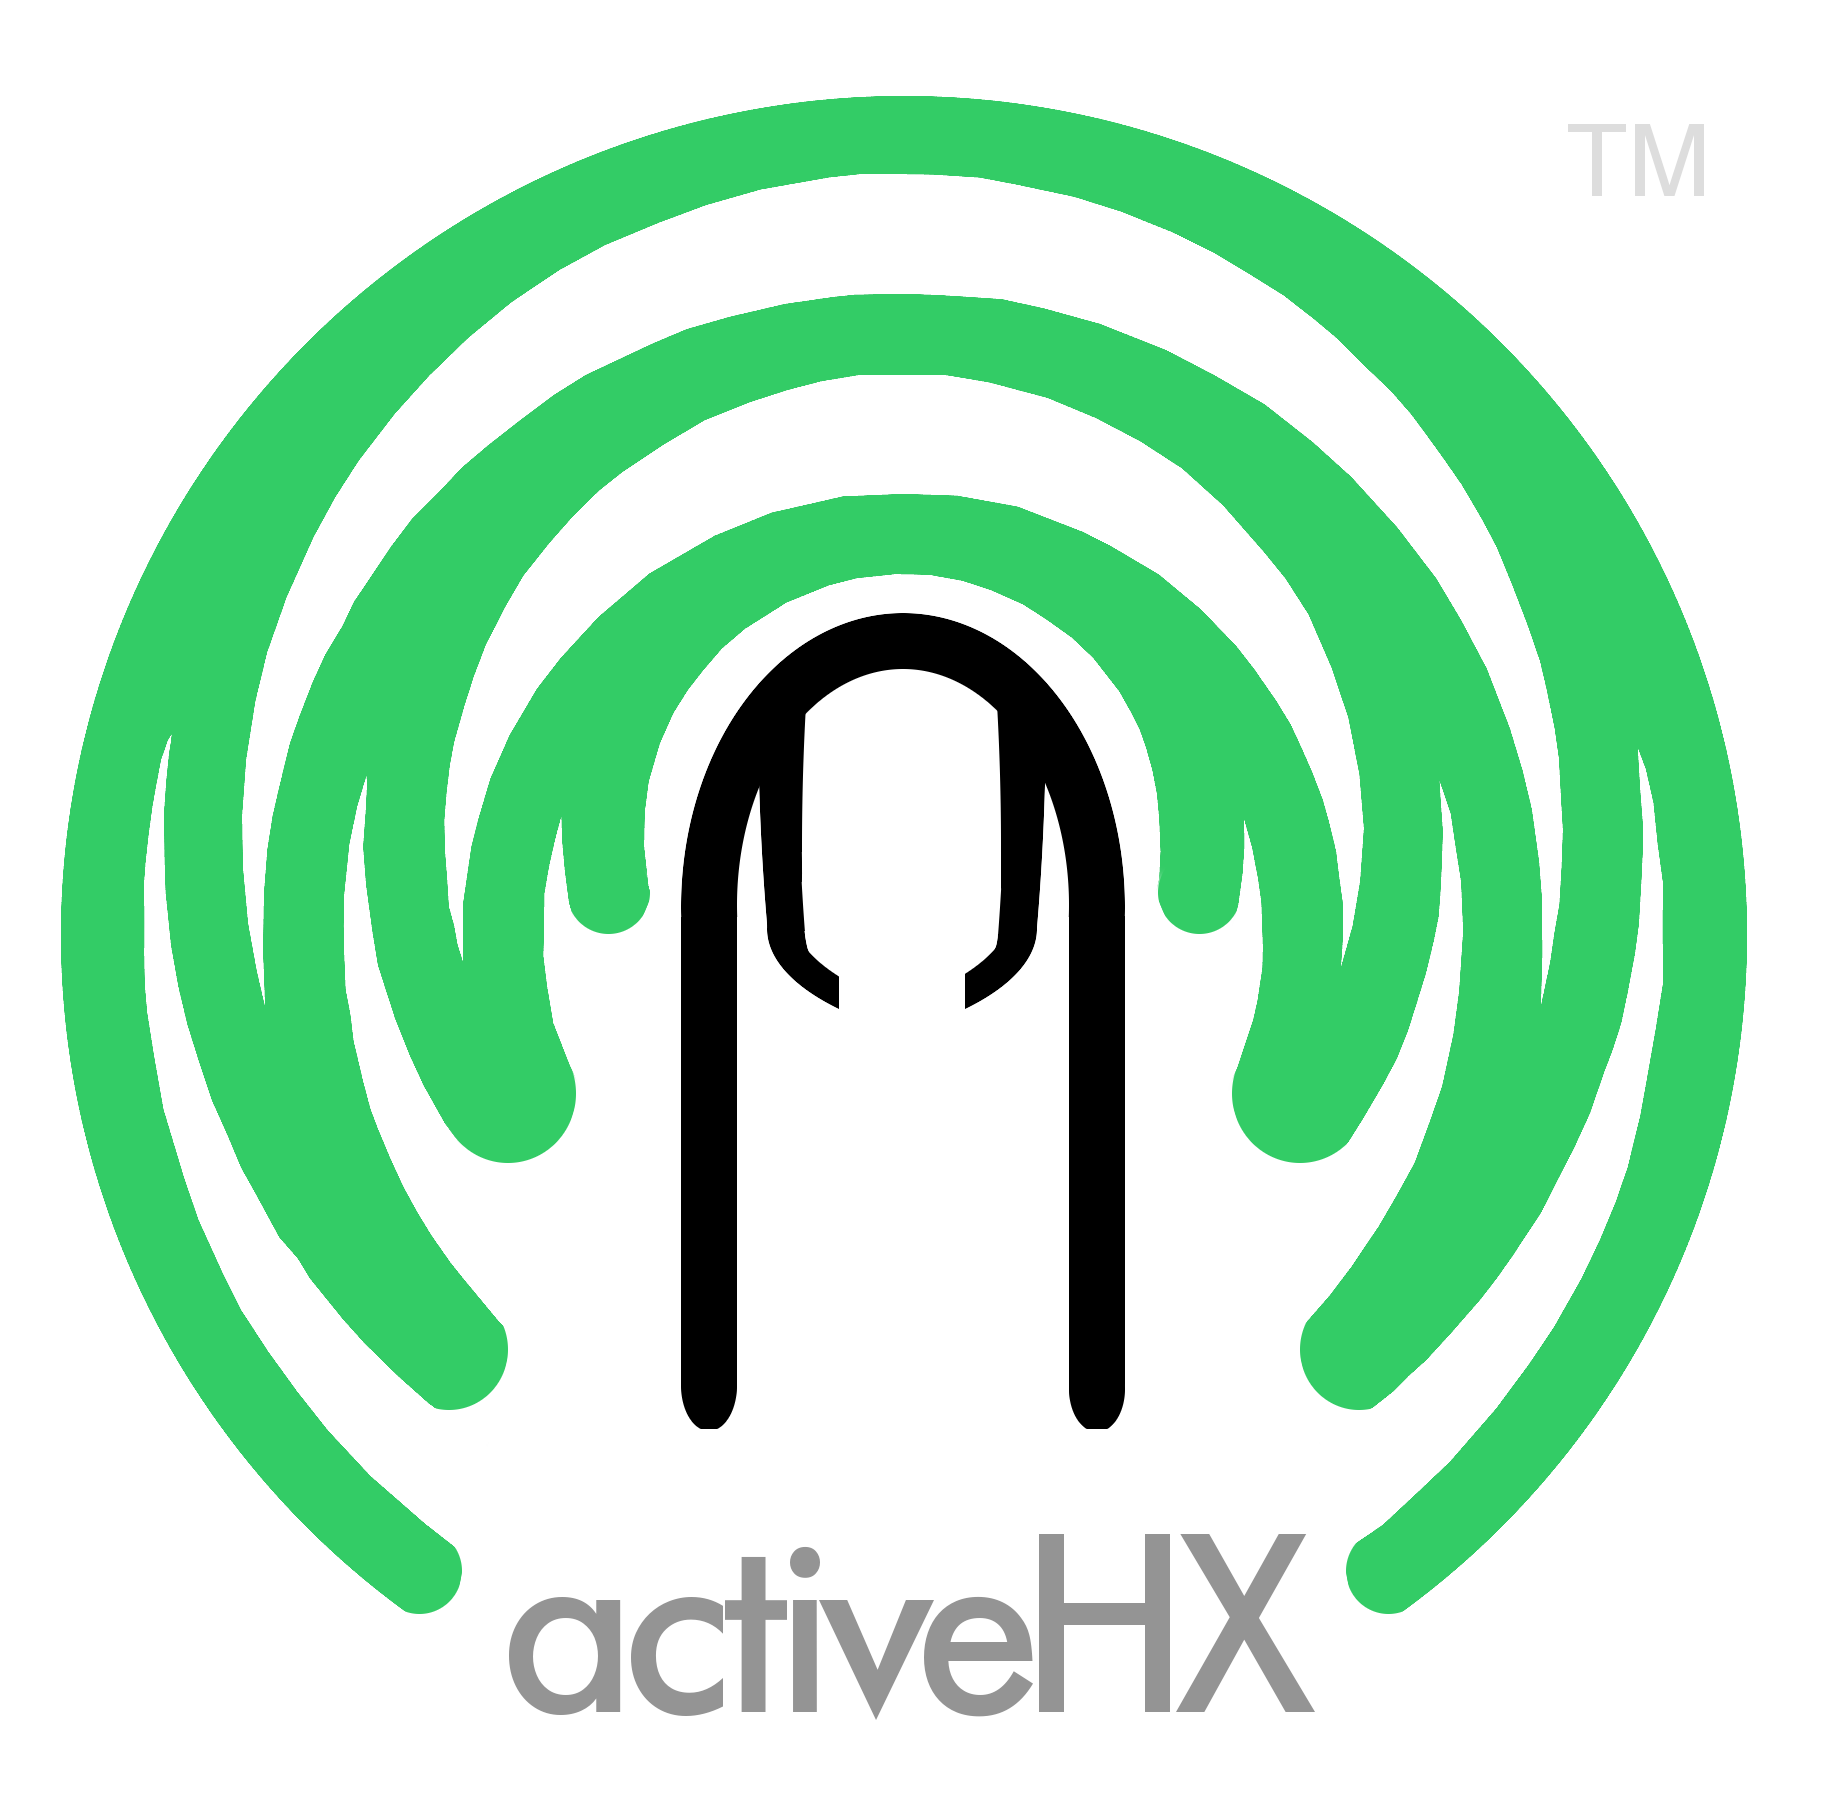 activeHX - Intuitive Hospital Systems